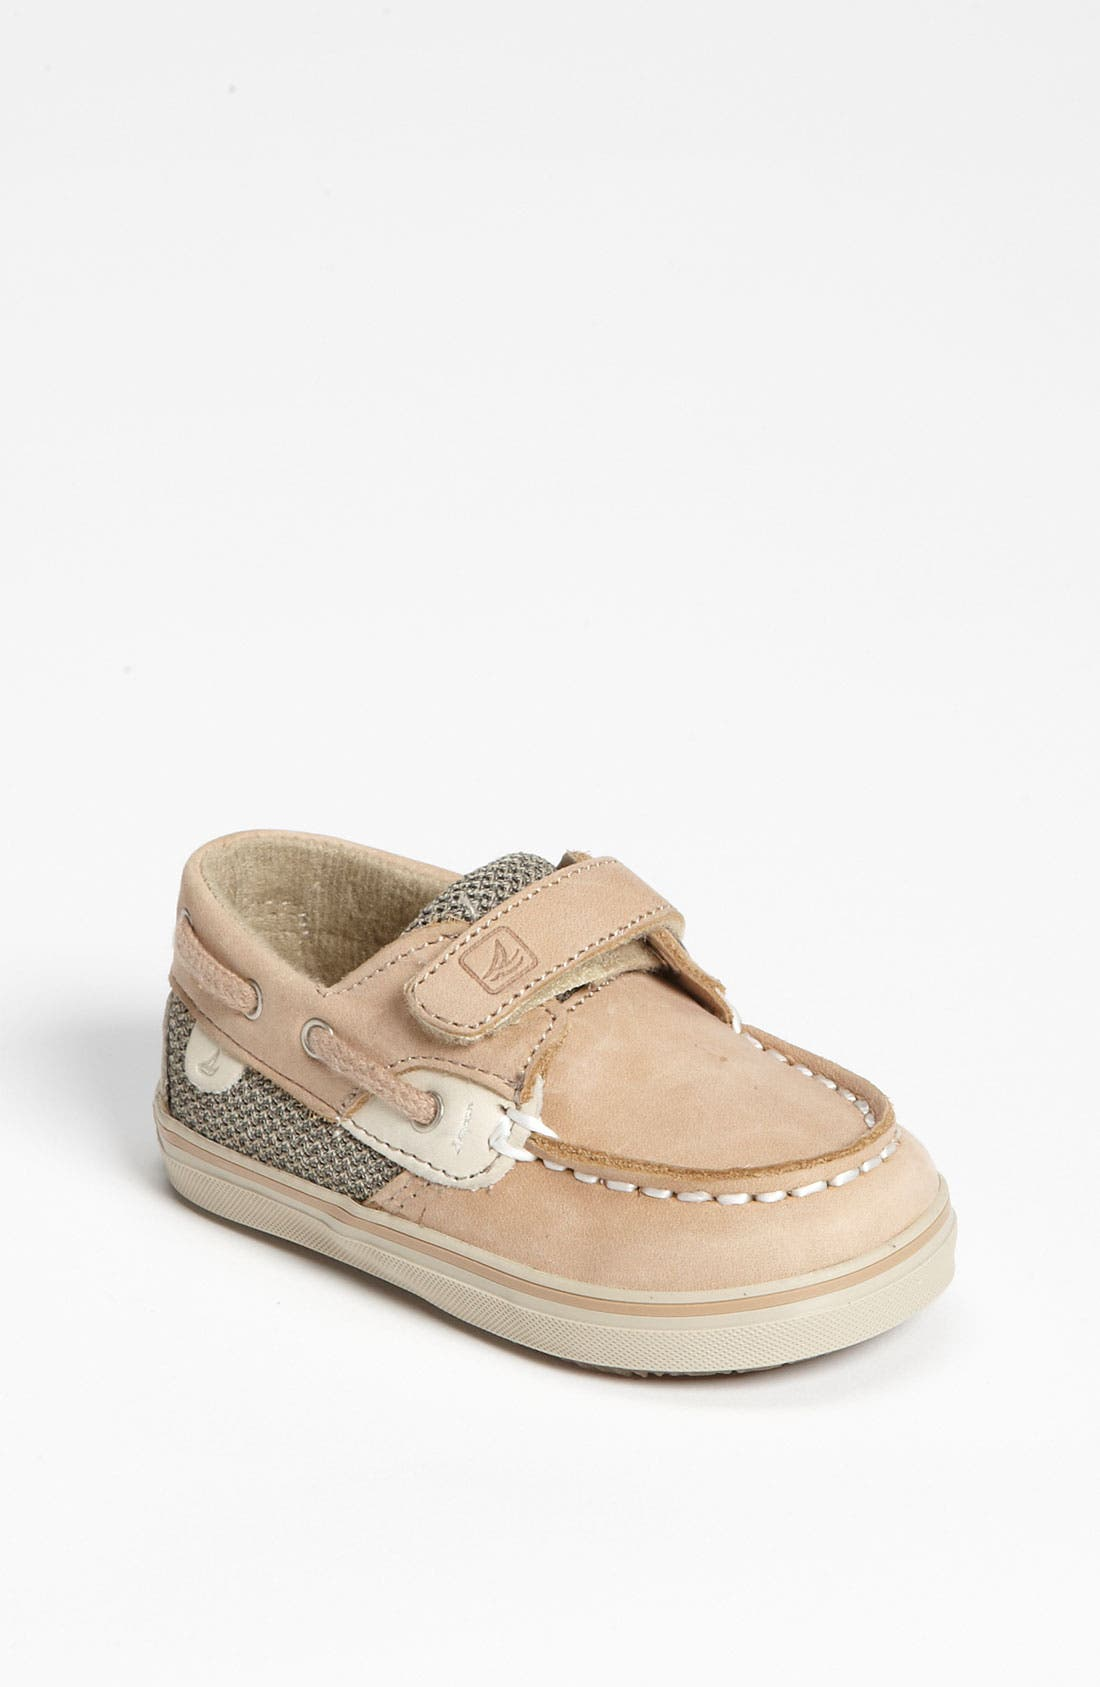 Alternate Image 1 Selected - Sperry Kids 'Bluefish' Boat Shoe (Baby)